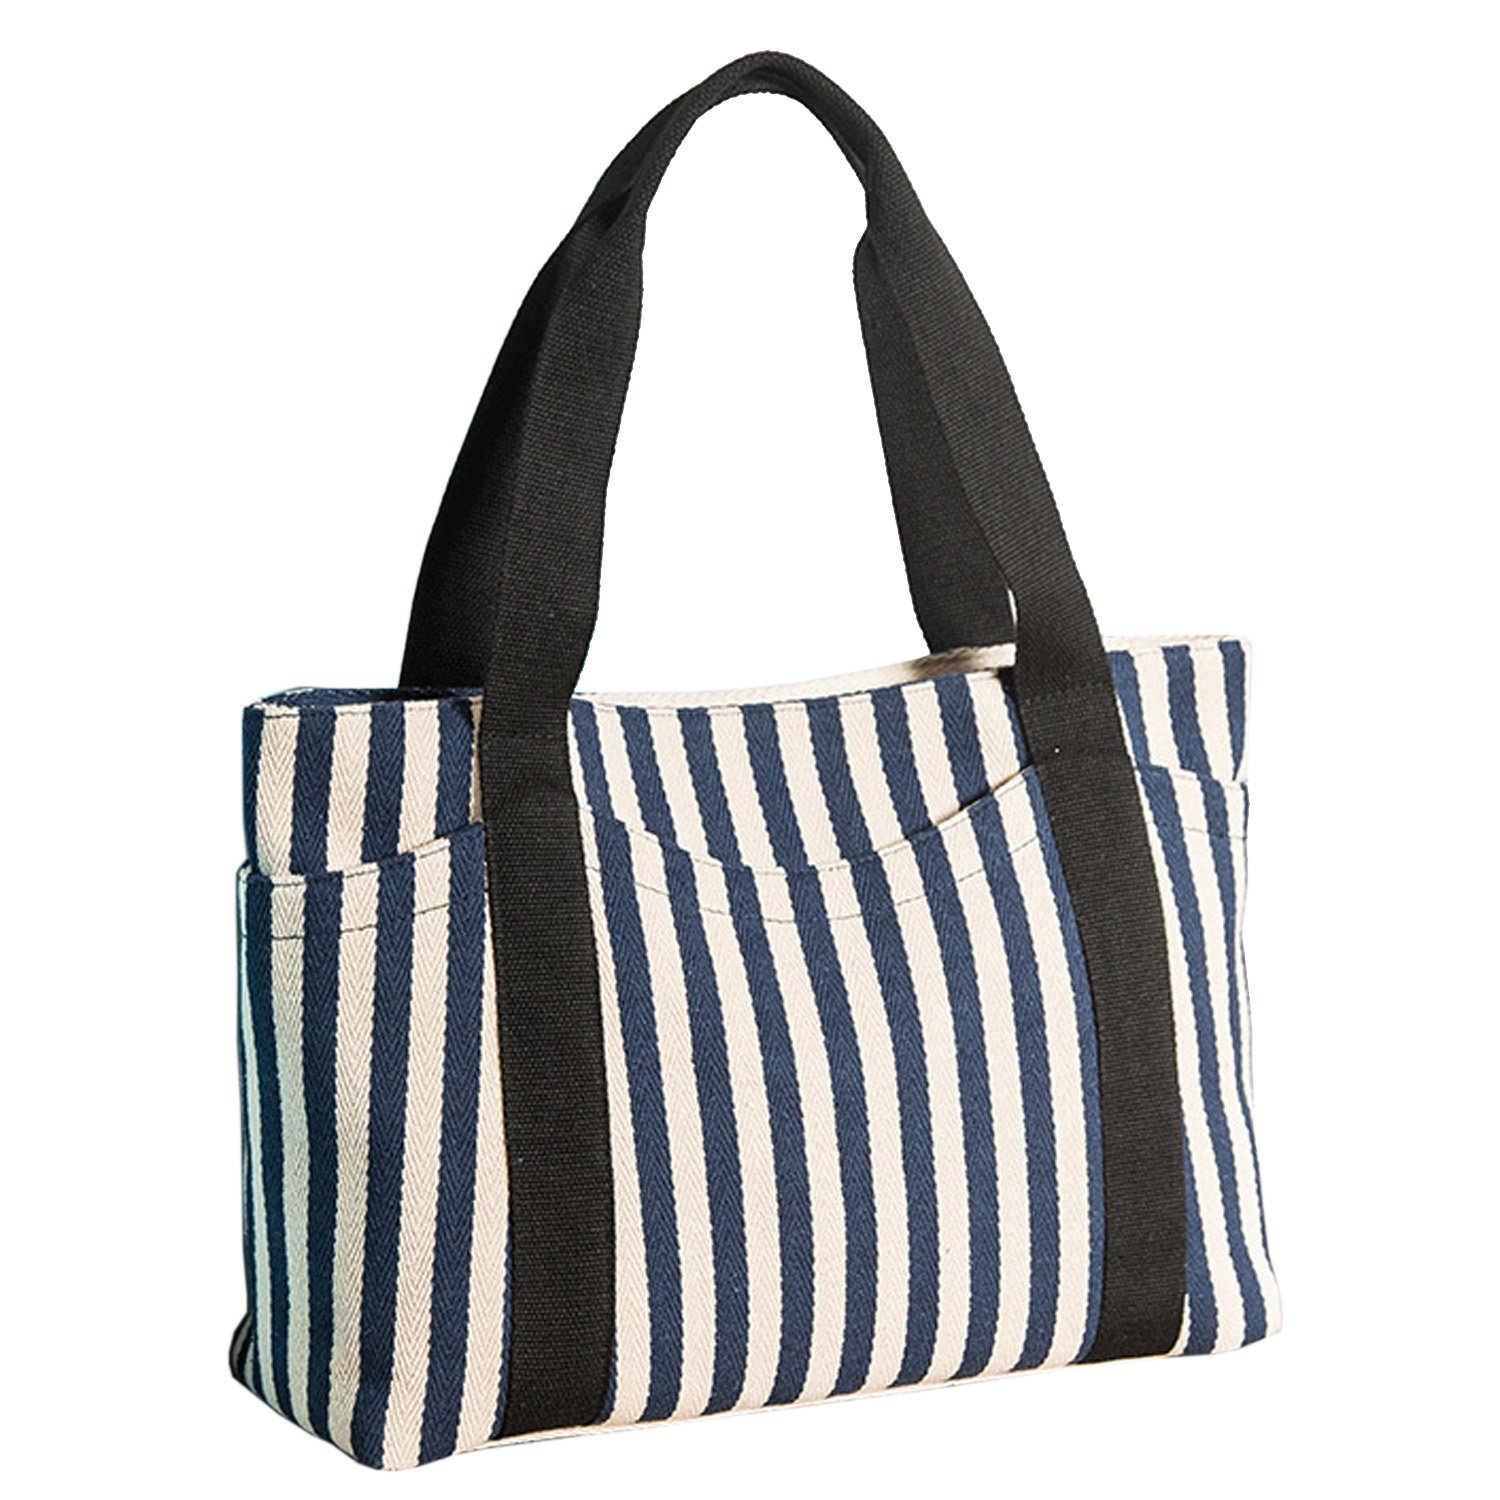 Lavogel Women's Tote Bag Striped Canvas Shoulder Bags Top Handle Beach Handbag (Blue)